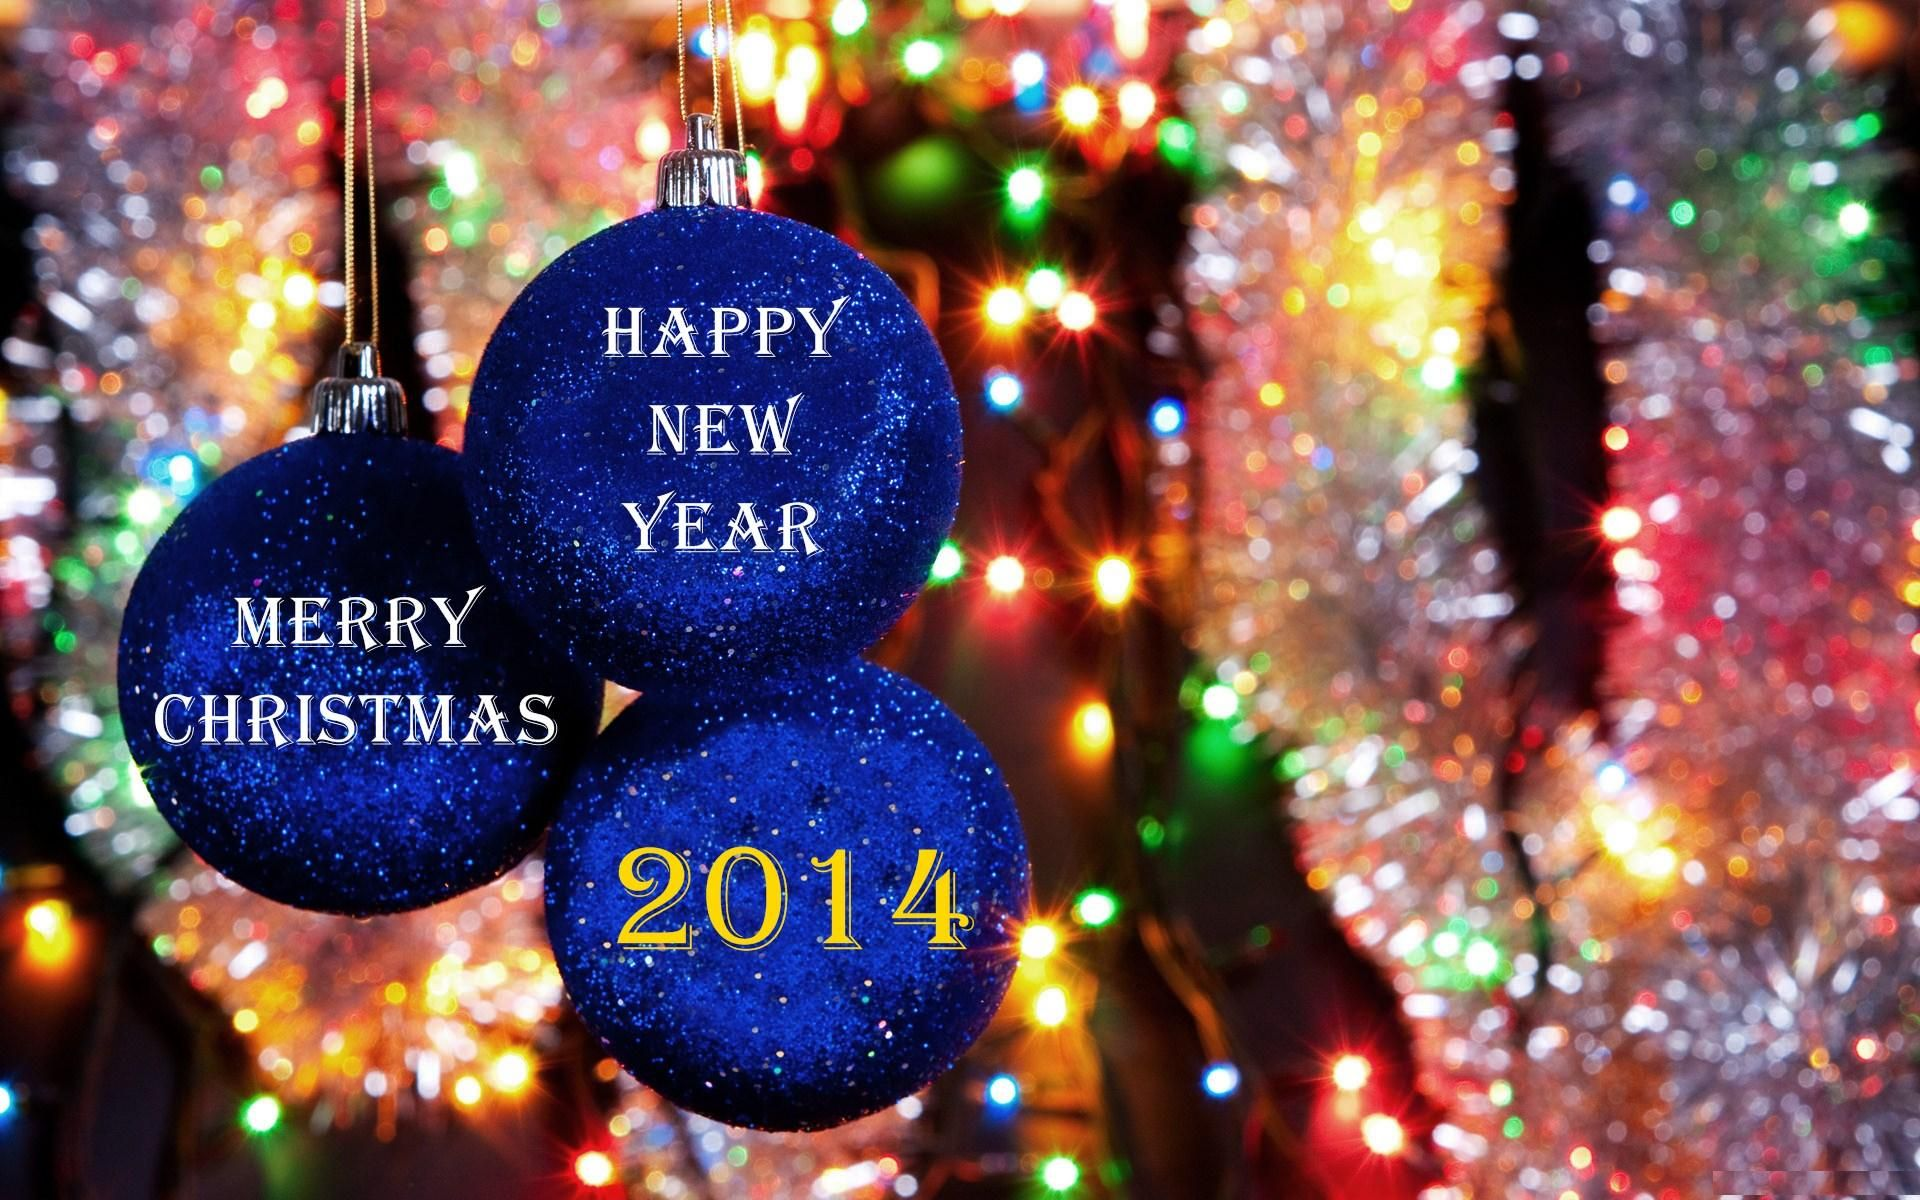 Merry christmas high definition wallpapers cool desktop background merry christmas 2014 and happy new year 2015 dance music full hd voltagebd Image collections